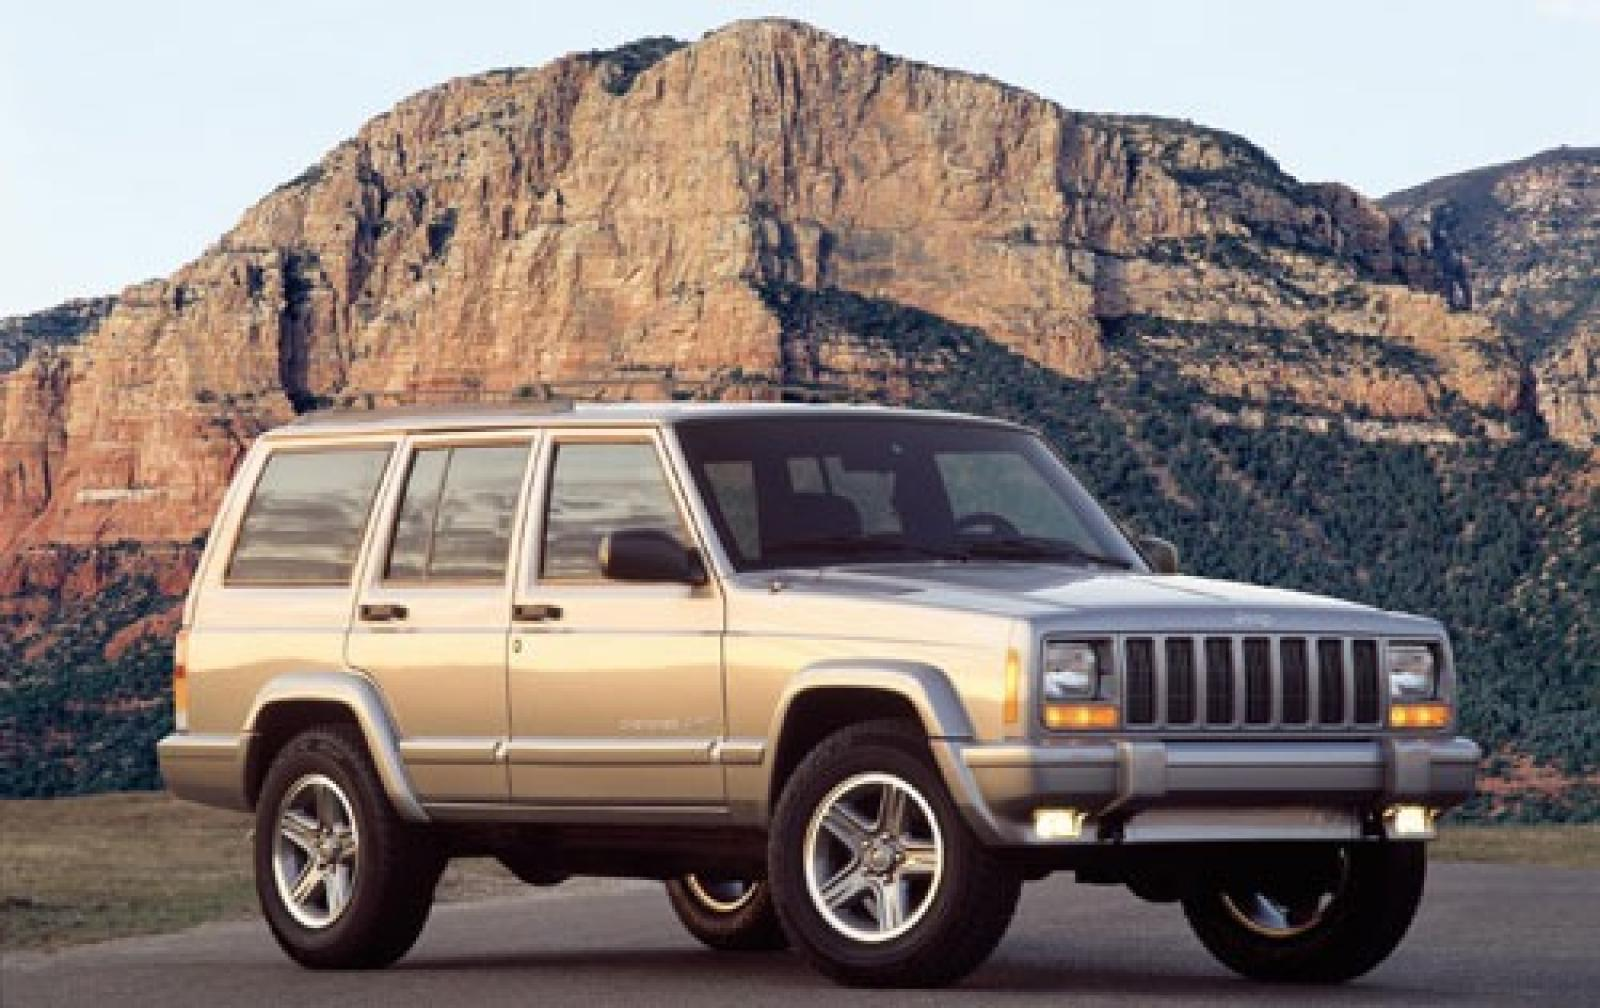 2001 jeep cherokee information and photos zombiedrive. Black Bedroom Furniture Sets. Home Design Ideas